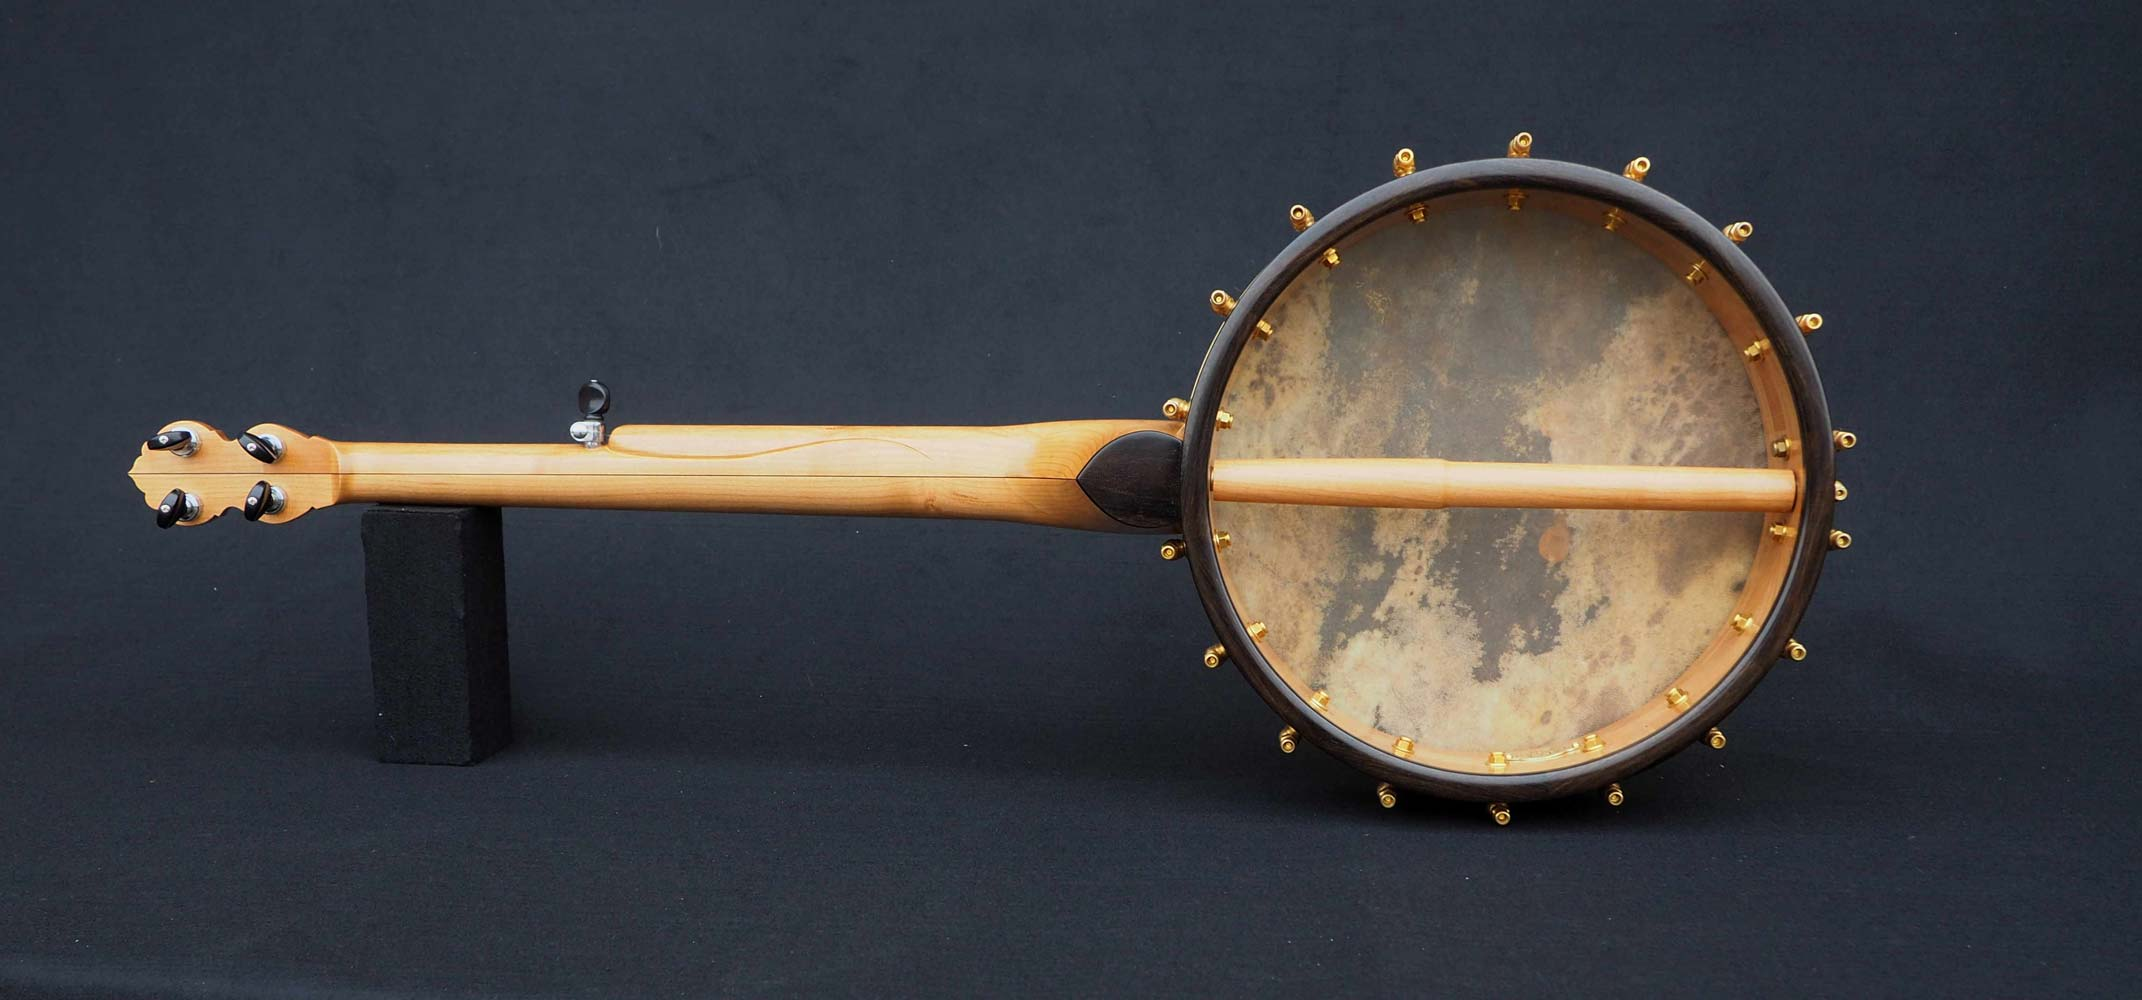 Eagle music 5 string Banjo